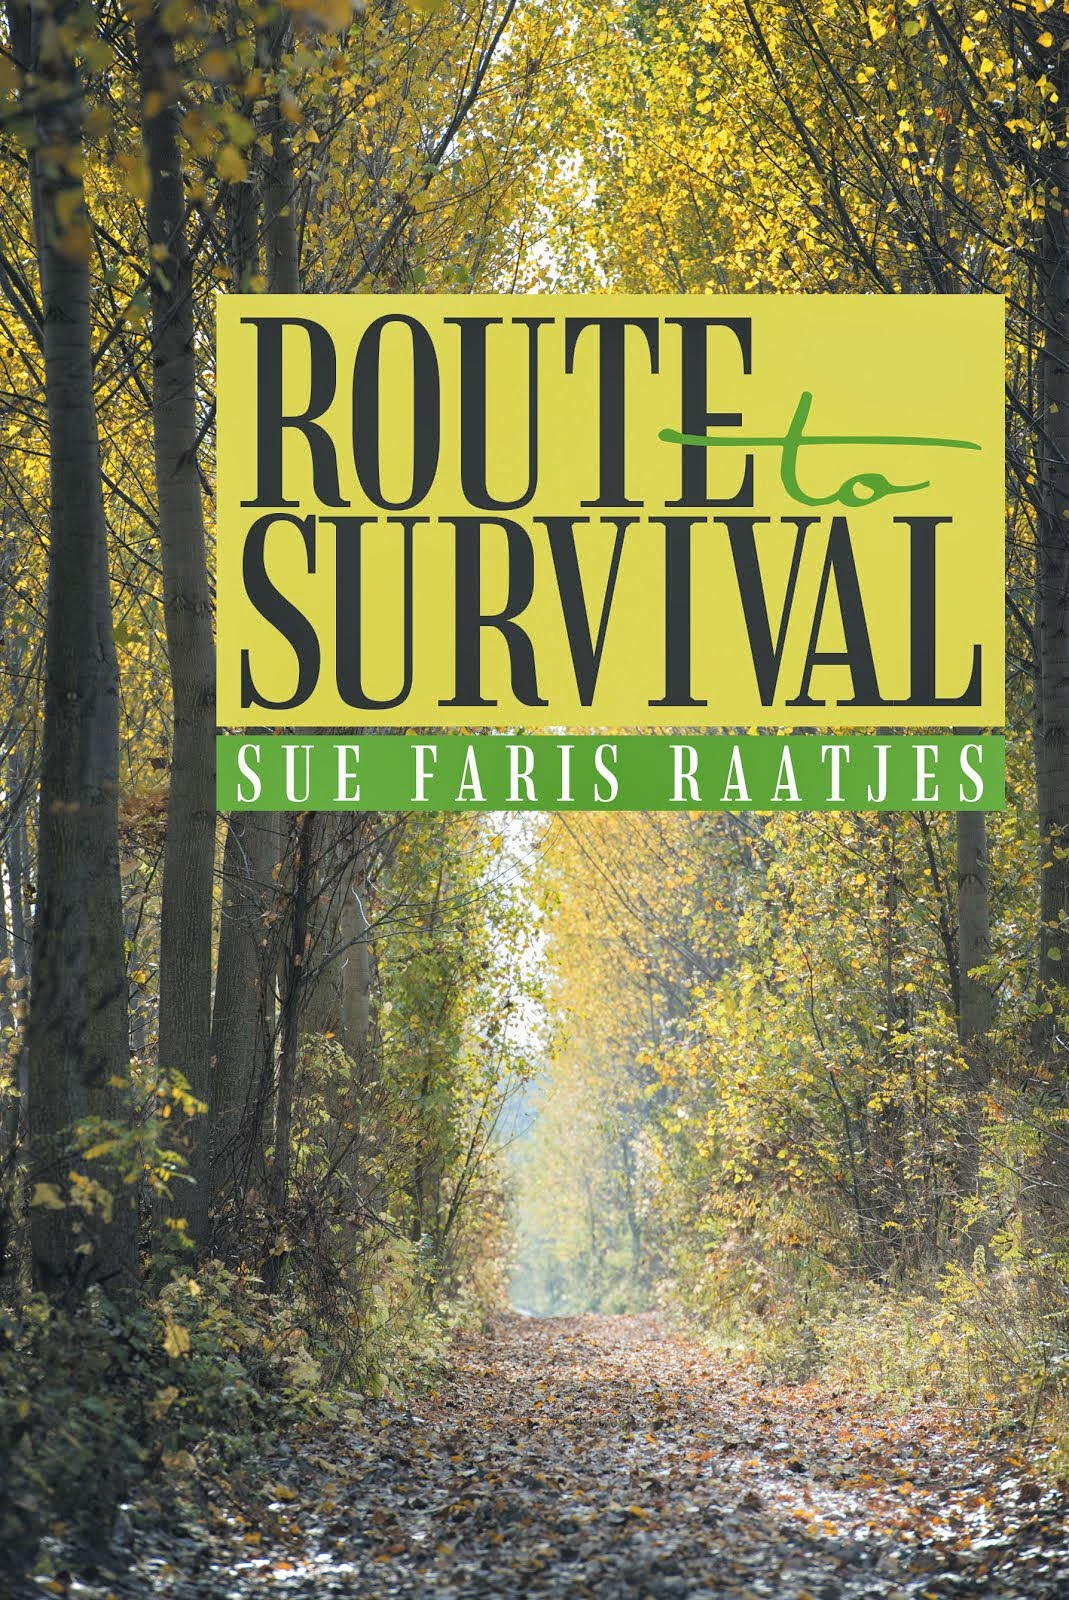 Route to Survival            by Sue Faris Raatjes